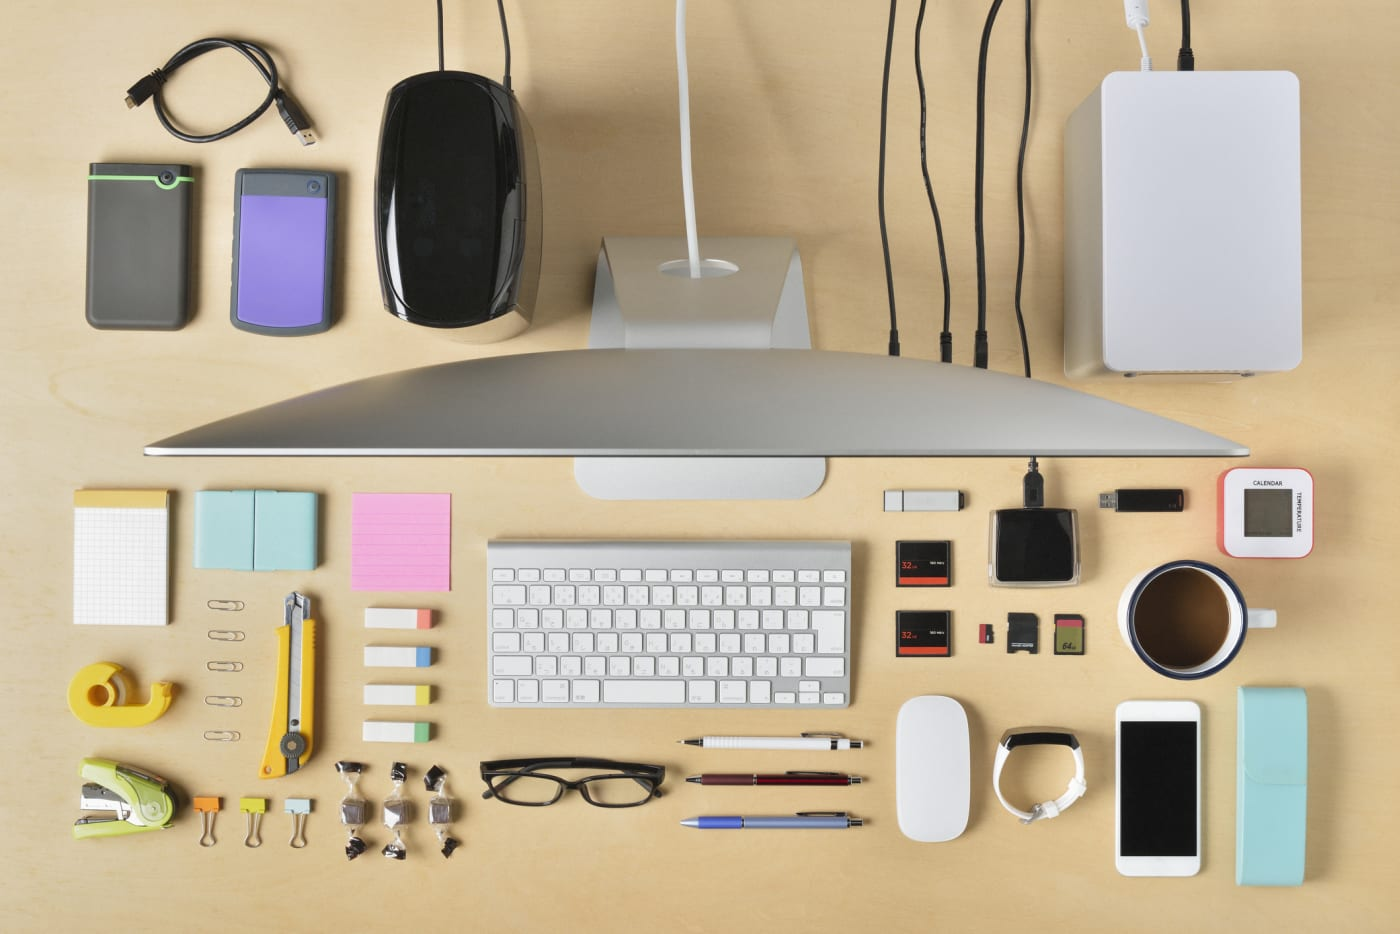 Best Work From Home Accessories and Gadgets in 2021